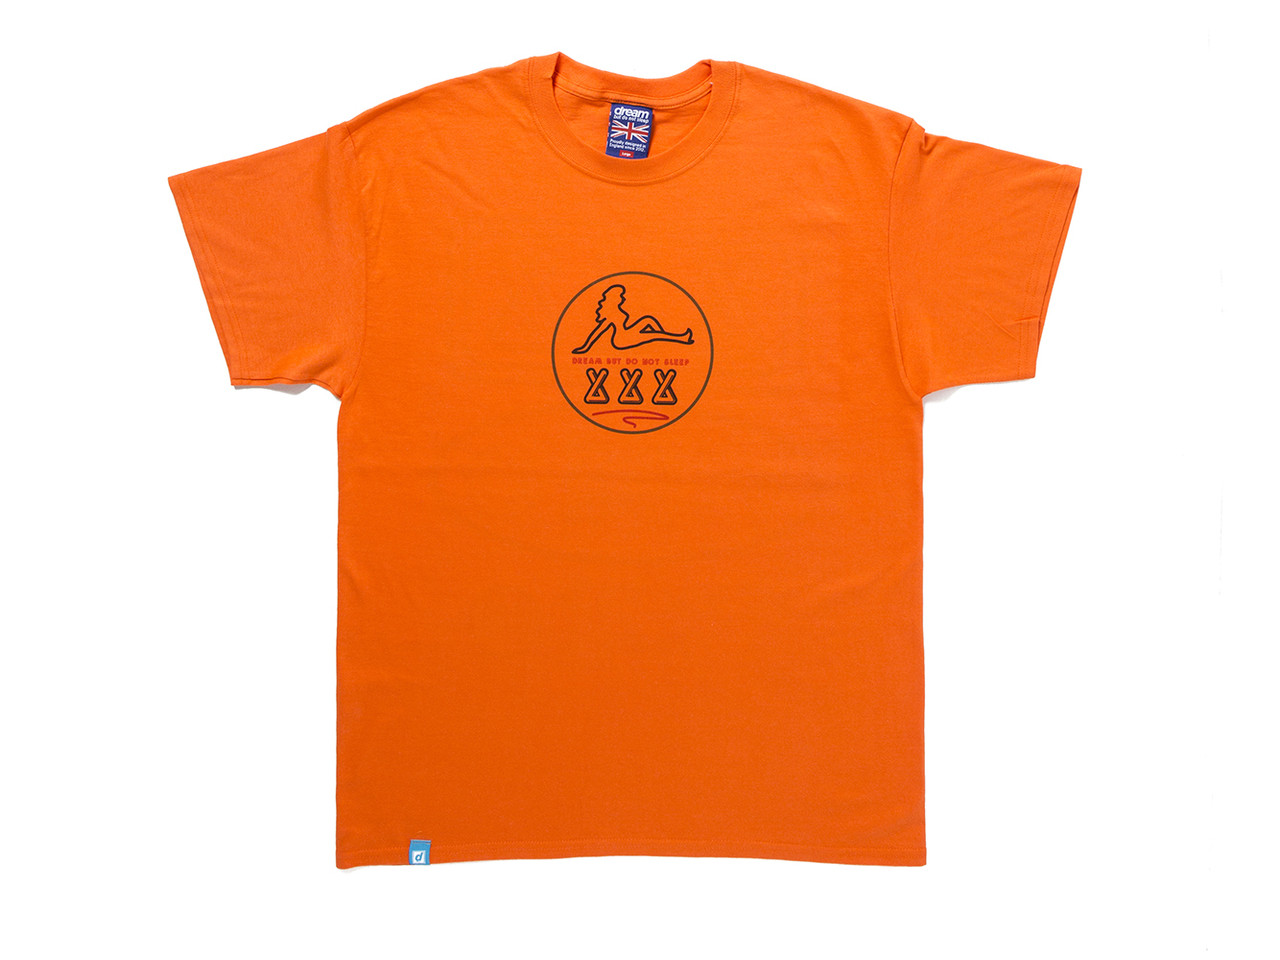 Adults Only' Design On Orange Short Sleeved T-shirt